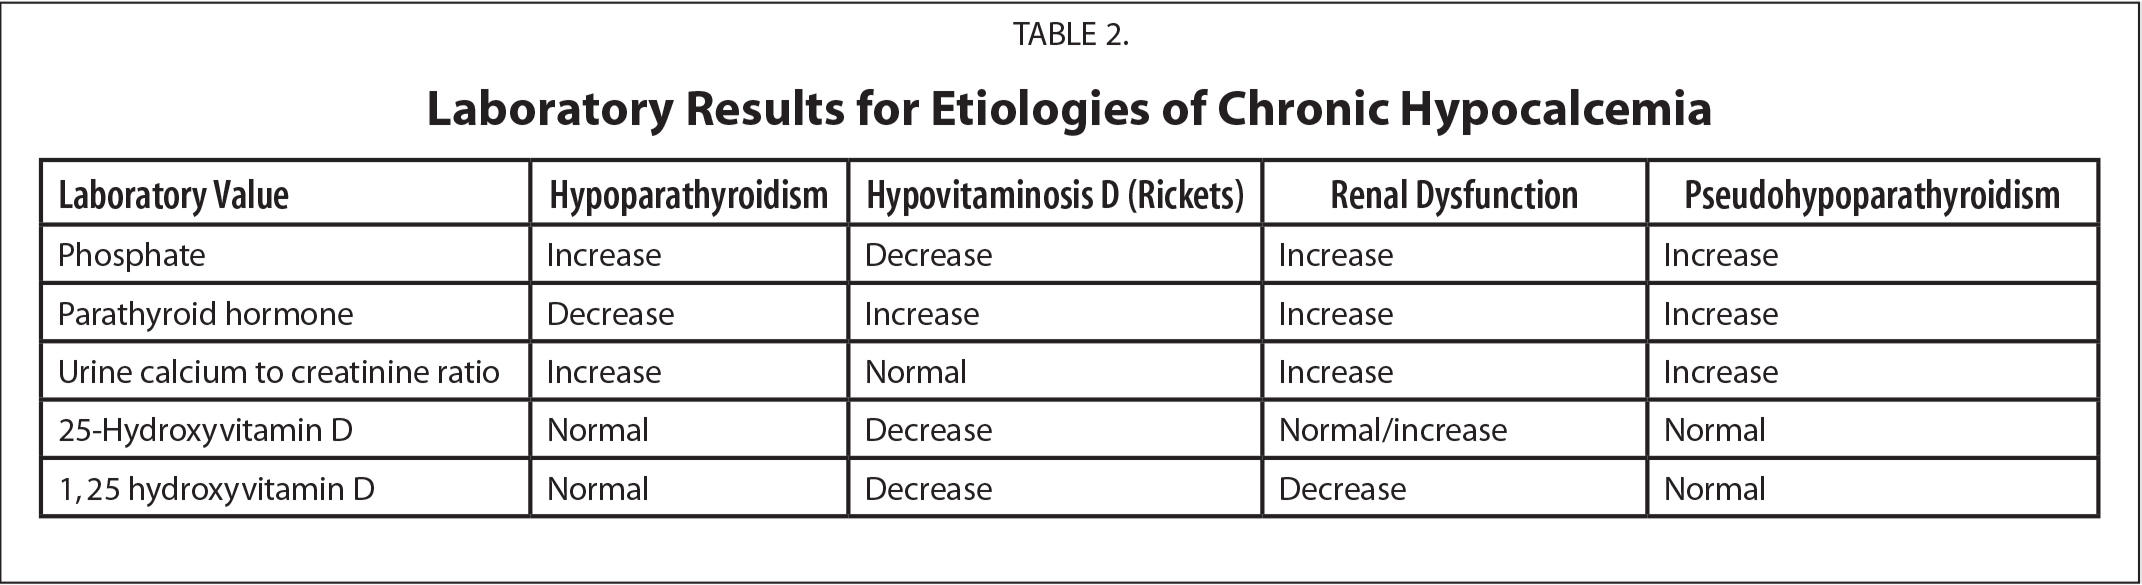 Laboratory Results for Etiologies of Chronic Hypocalcemia